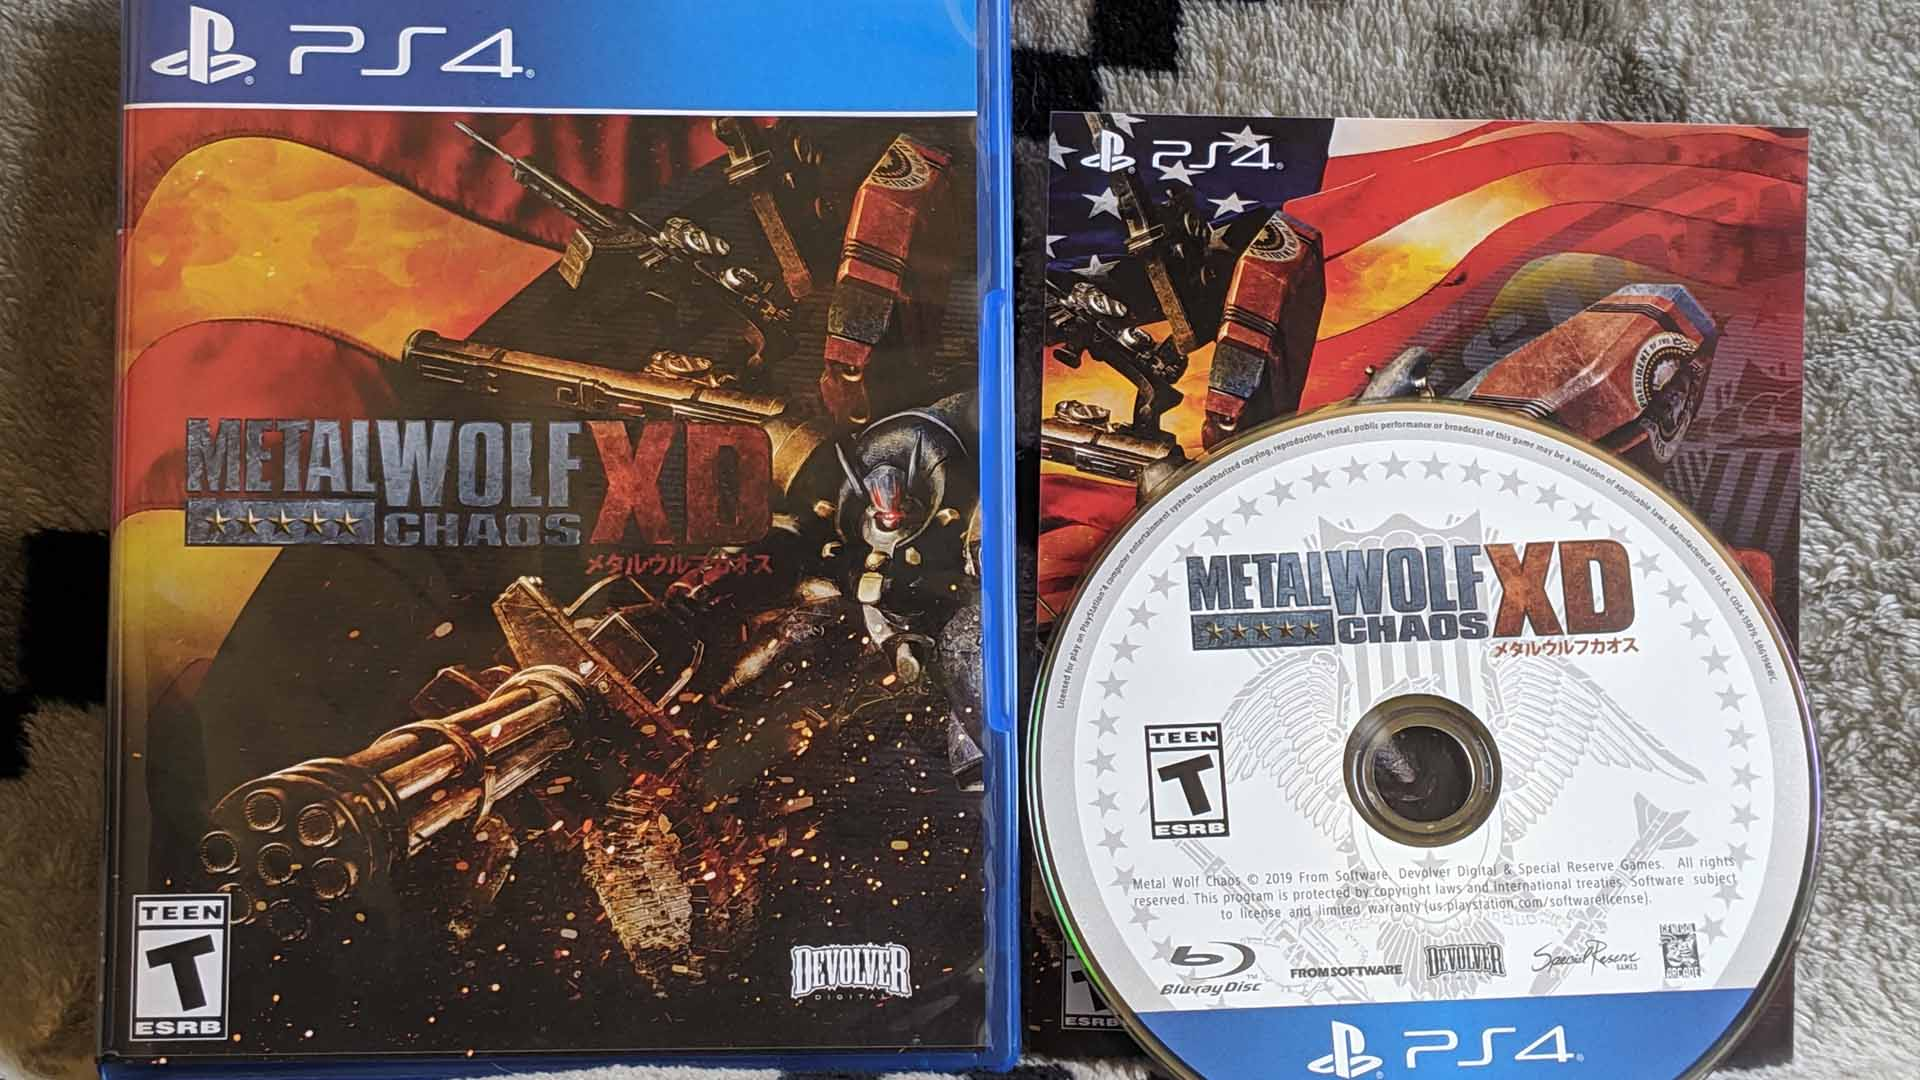 PS4 physical copy provided for review by General Arcade, Devolver Digital, and Special Reserve Games.